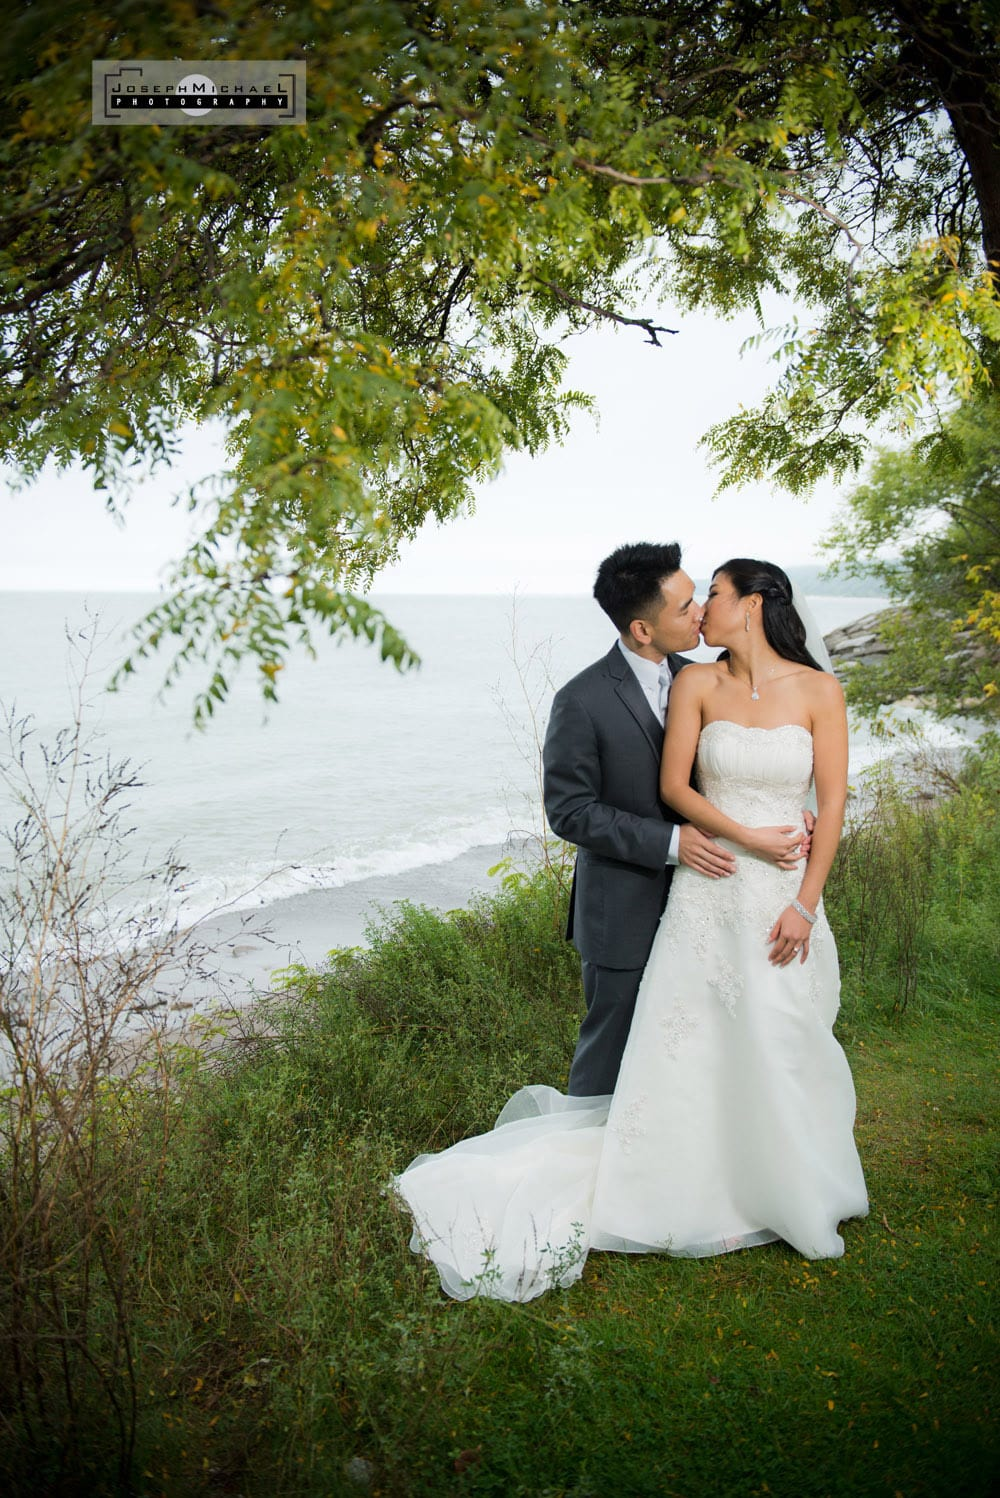 Wedding Photography at Bluffers Park Toronto